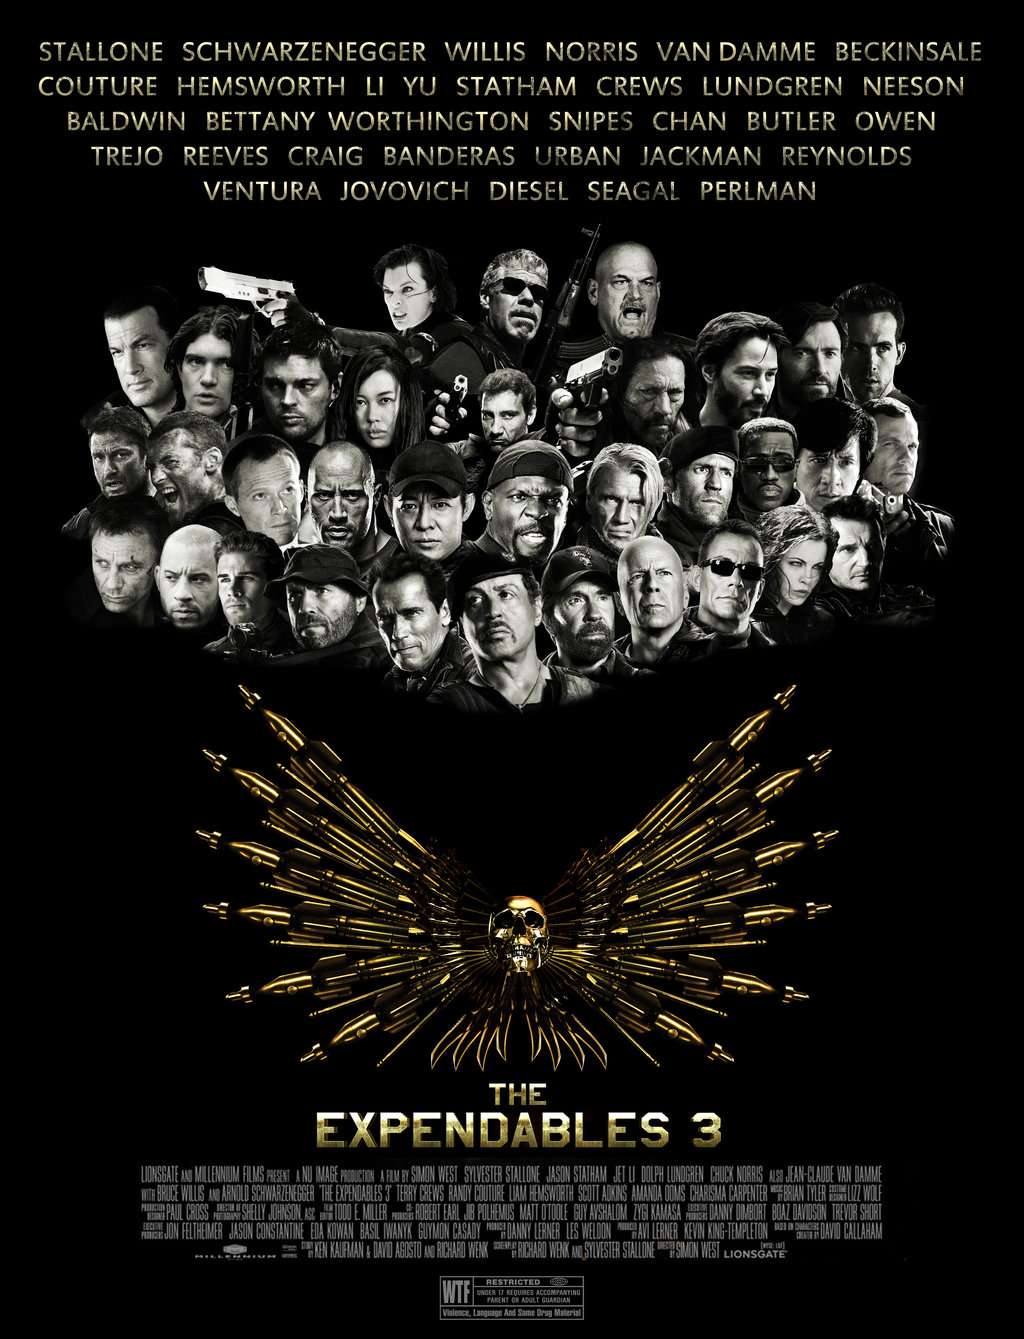 Expendables 3 full movie hd in hindi free download - limigateway